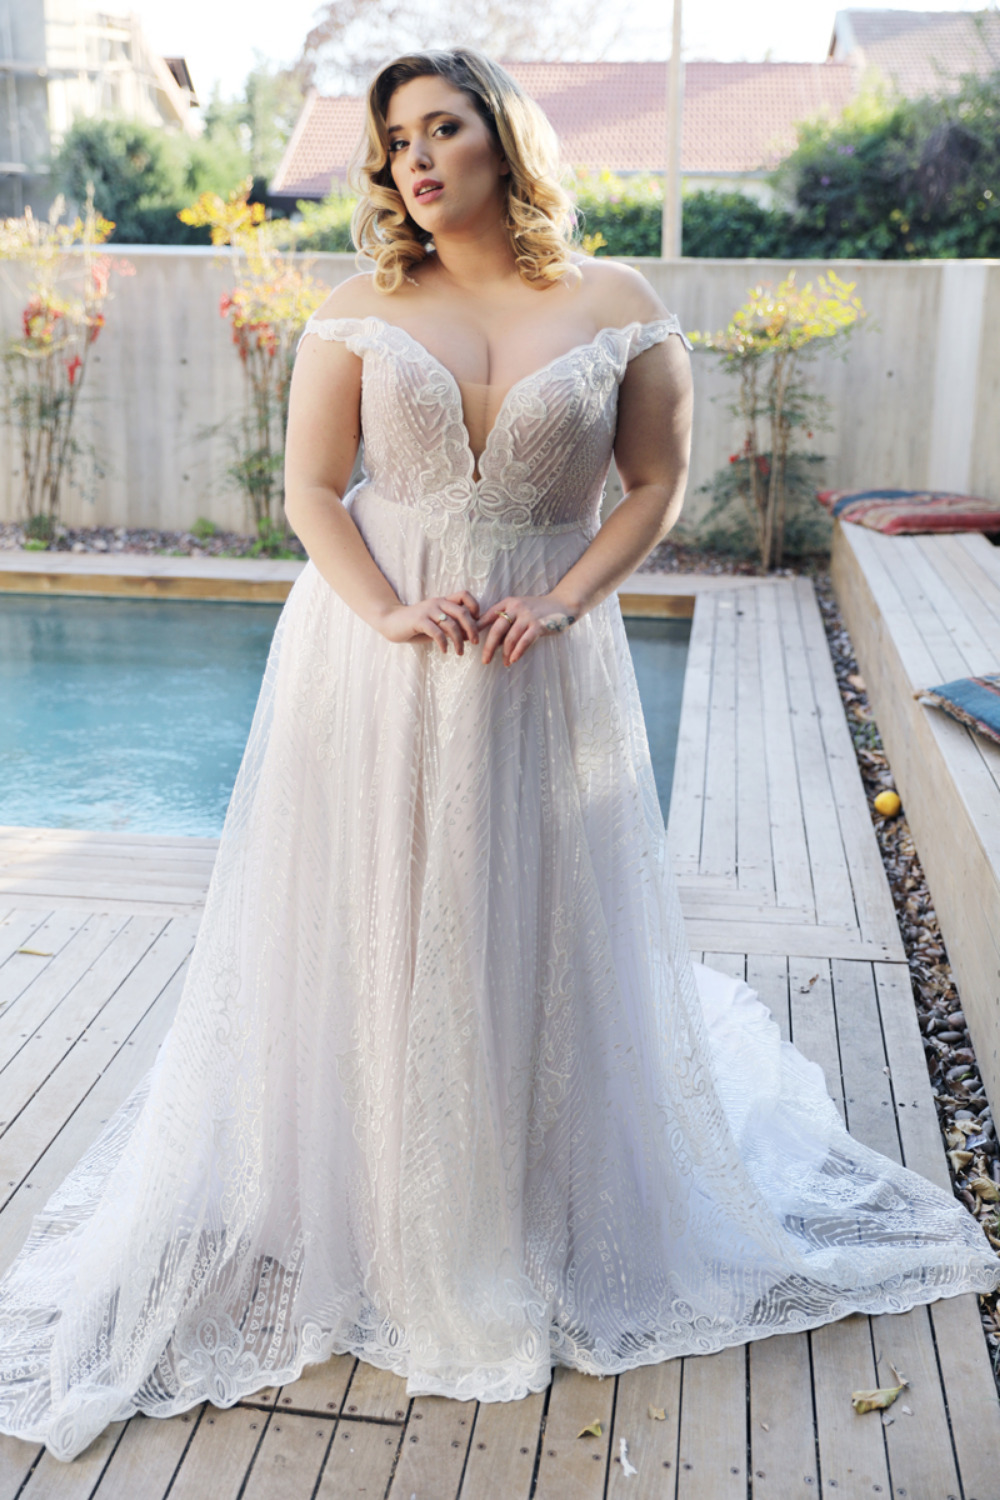 The Curvy Babe Bridal Collection Lets You Show Off Your